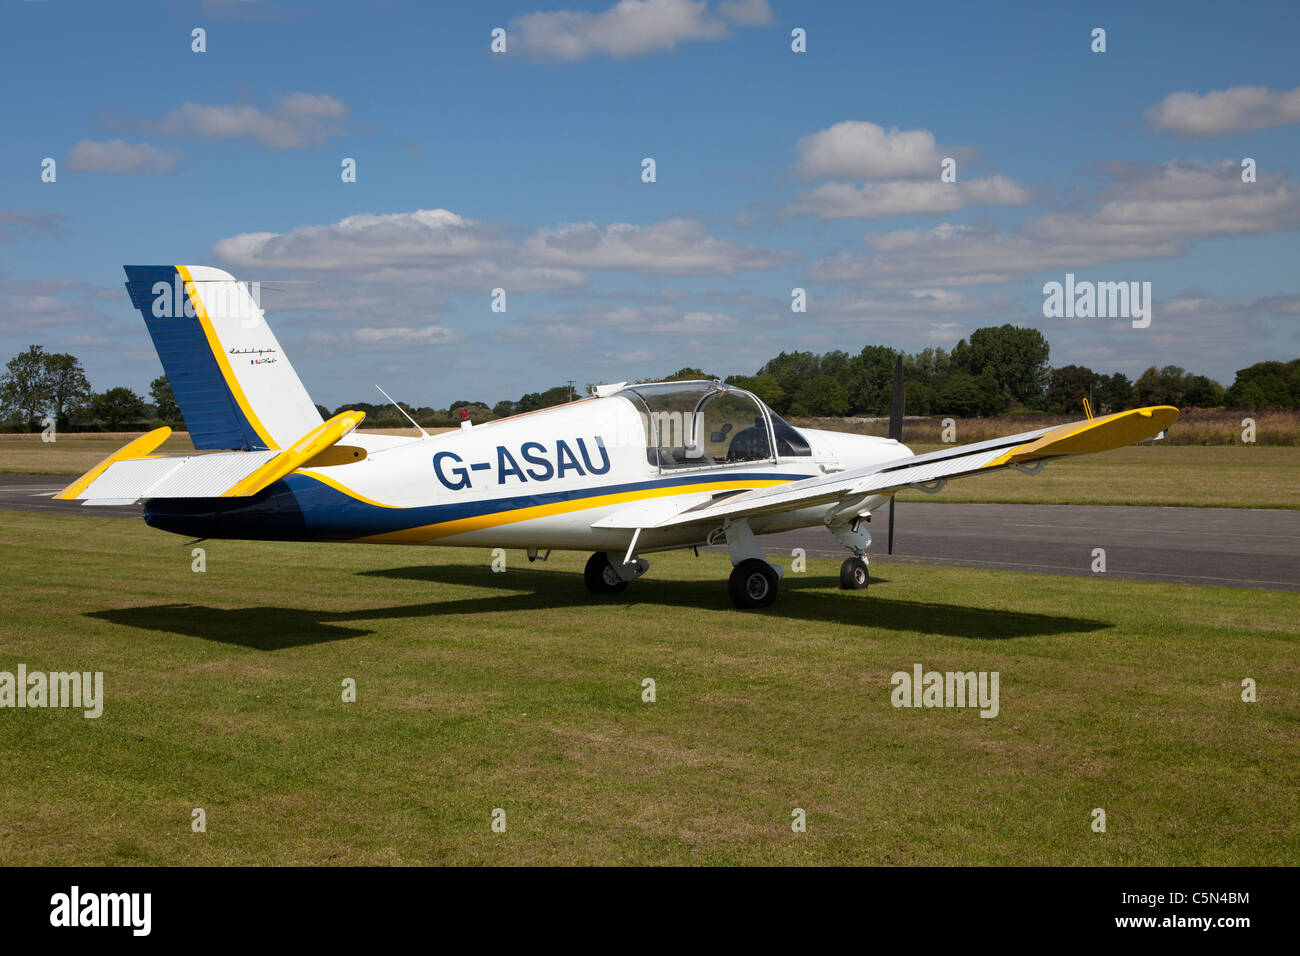 Morane Saulnier MS880B Rallye Club G-ASAU on the ground at Breighton Airfield - Stock Image